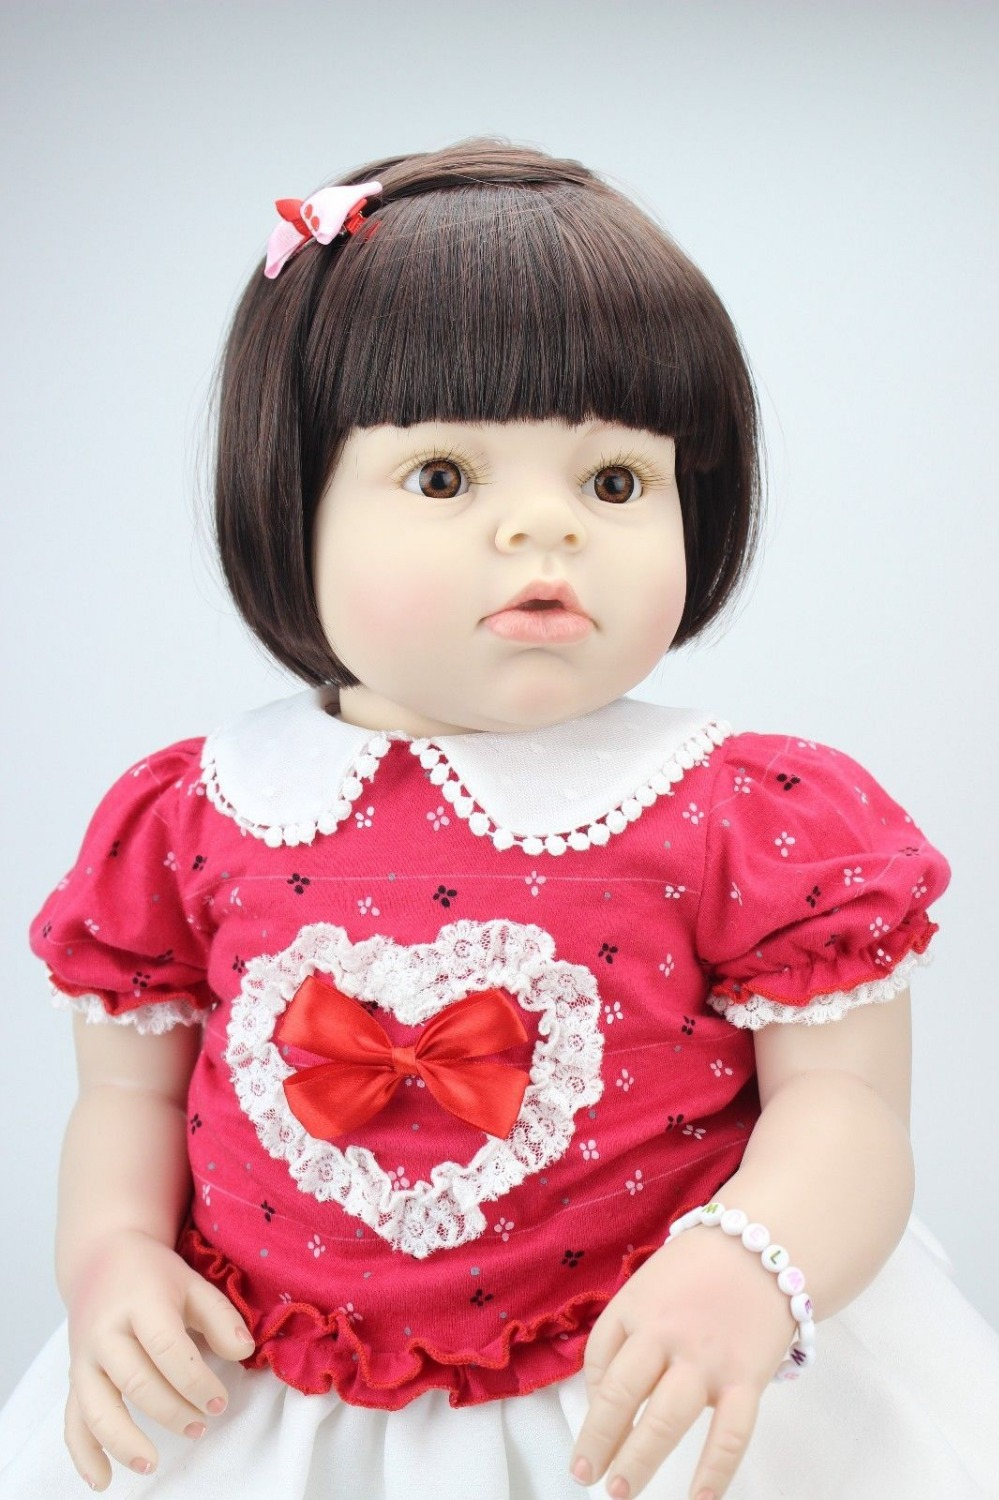 lifelike reborn toddler doll soft silicone vinyl real gentle touch 28inches short wig dolllifelike reborn toddler doll soft silicone vinyl real gentle touch 28inches short wig doll